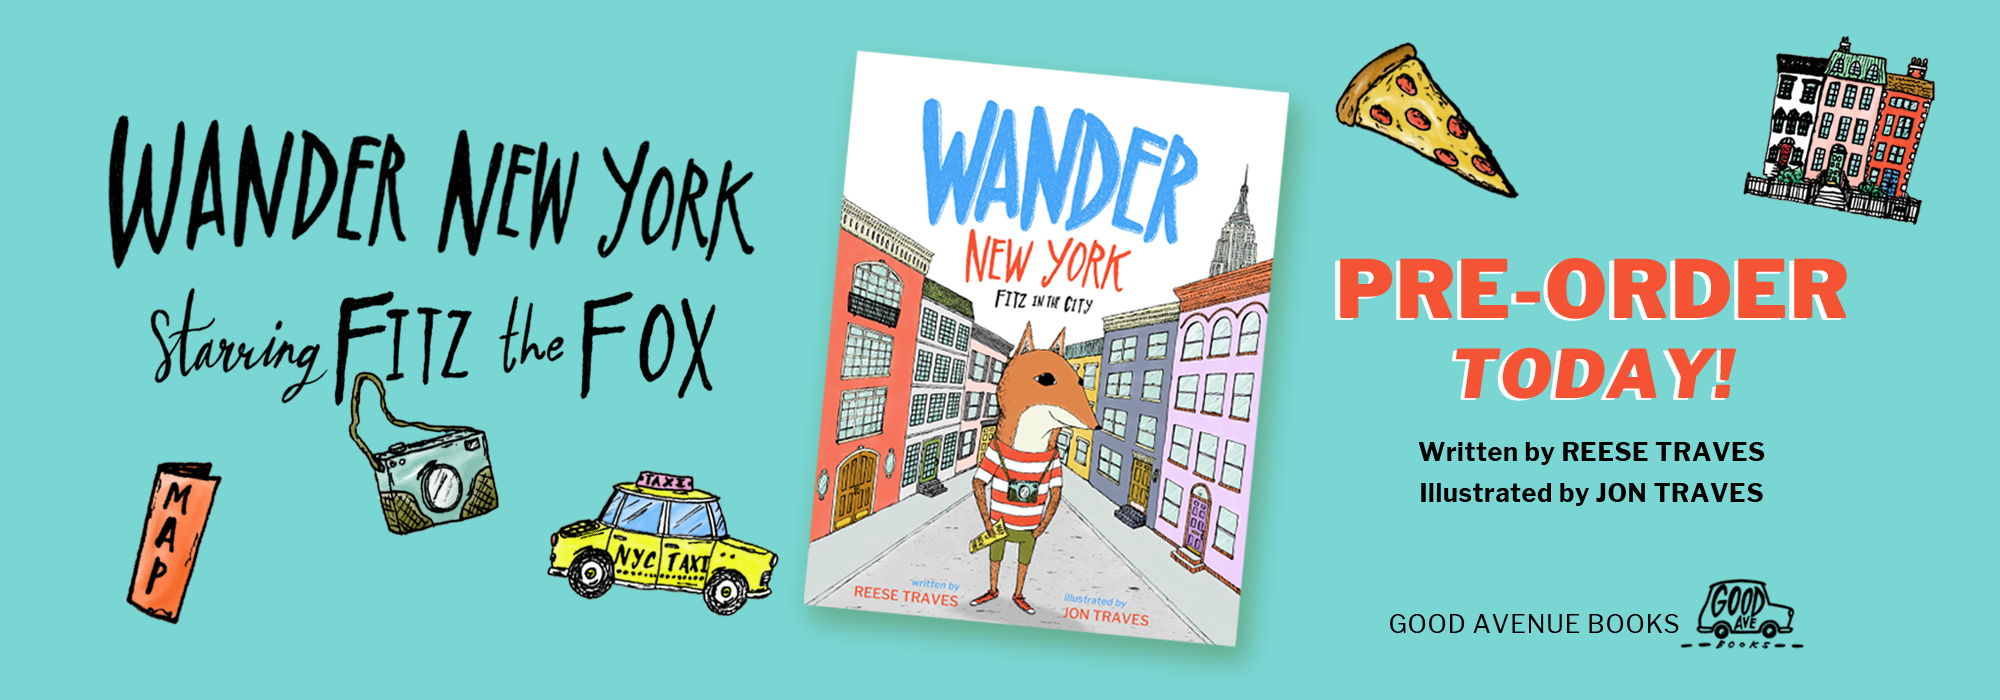 Pre-order Wander New York: Fitz in the City picture book starting today! Book written by Reese Traves and illustrated by Jon Traves. Staring Fitz the Fox.